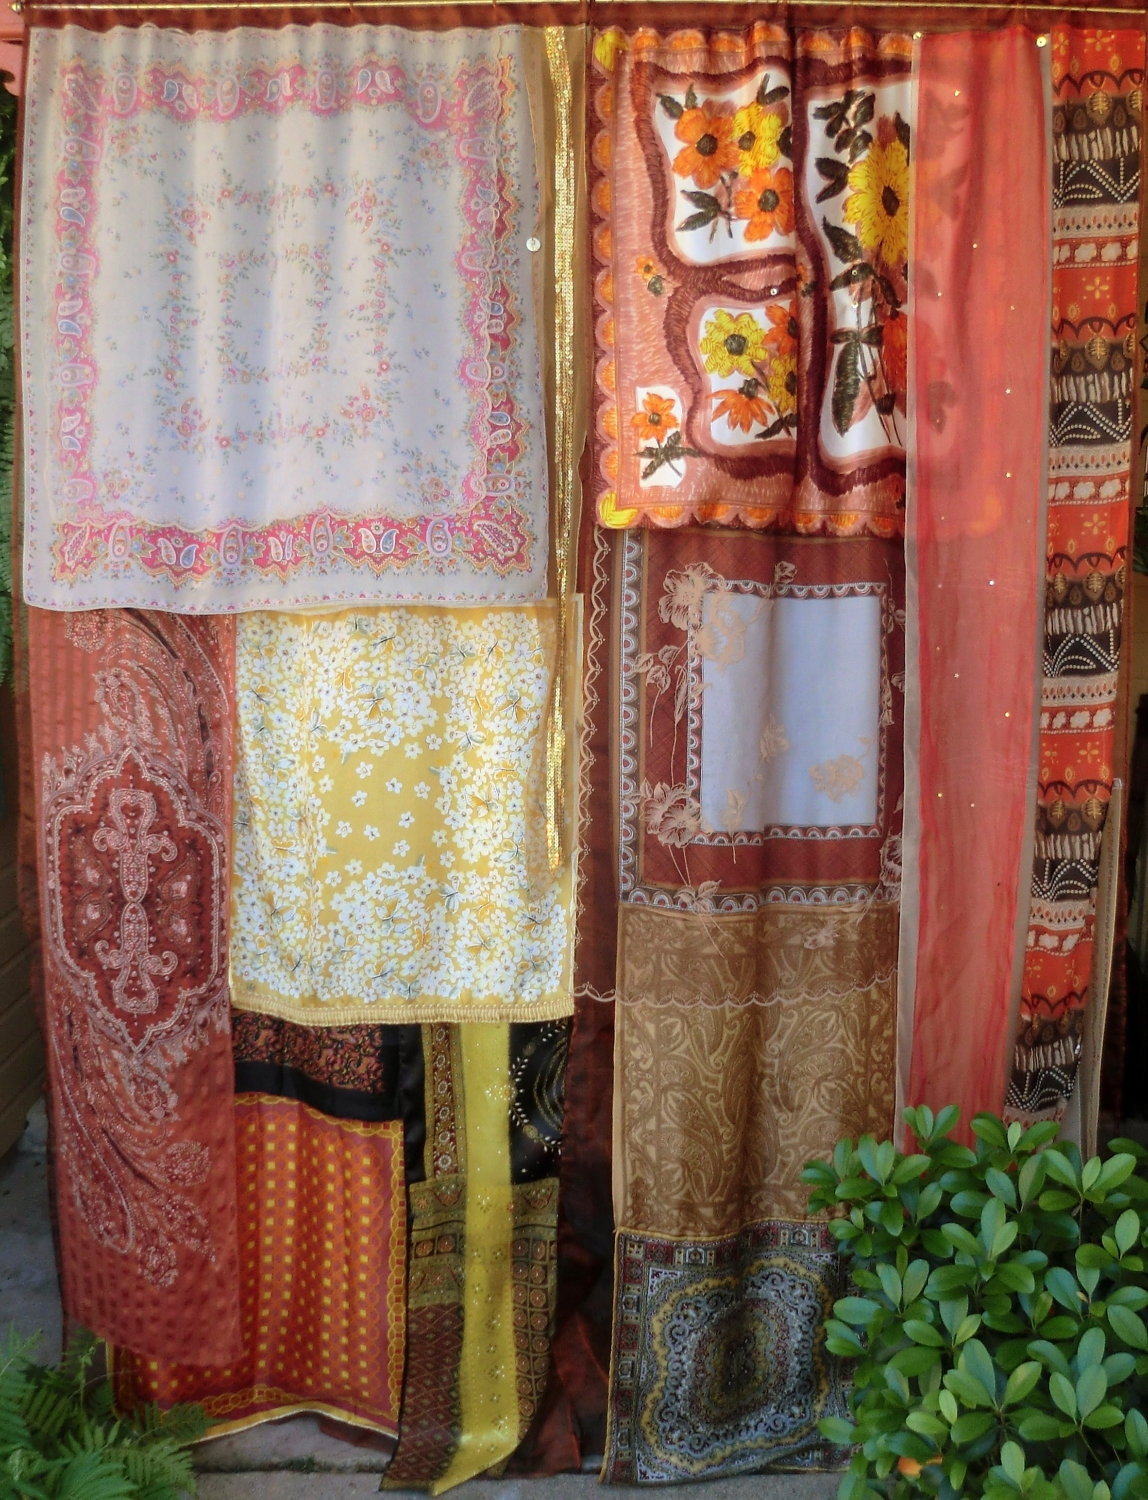 Earthsong Handmade Gypsy Curtains Bohemian Global Hippie Within Bohemian Curtains (View 4 of 15)